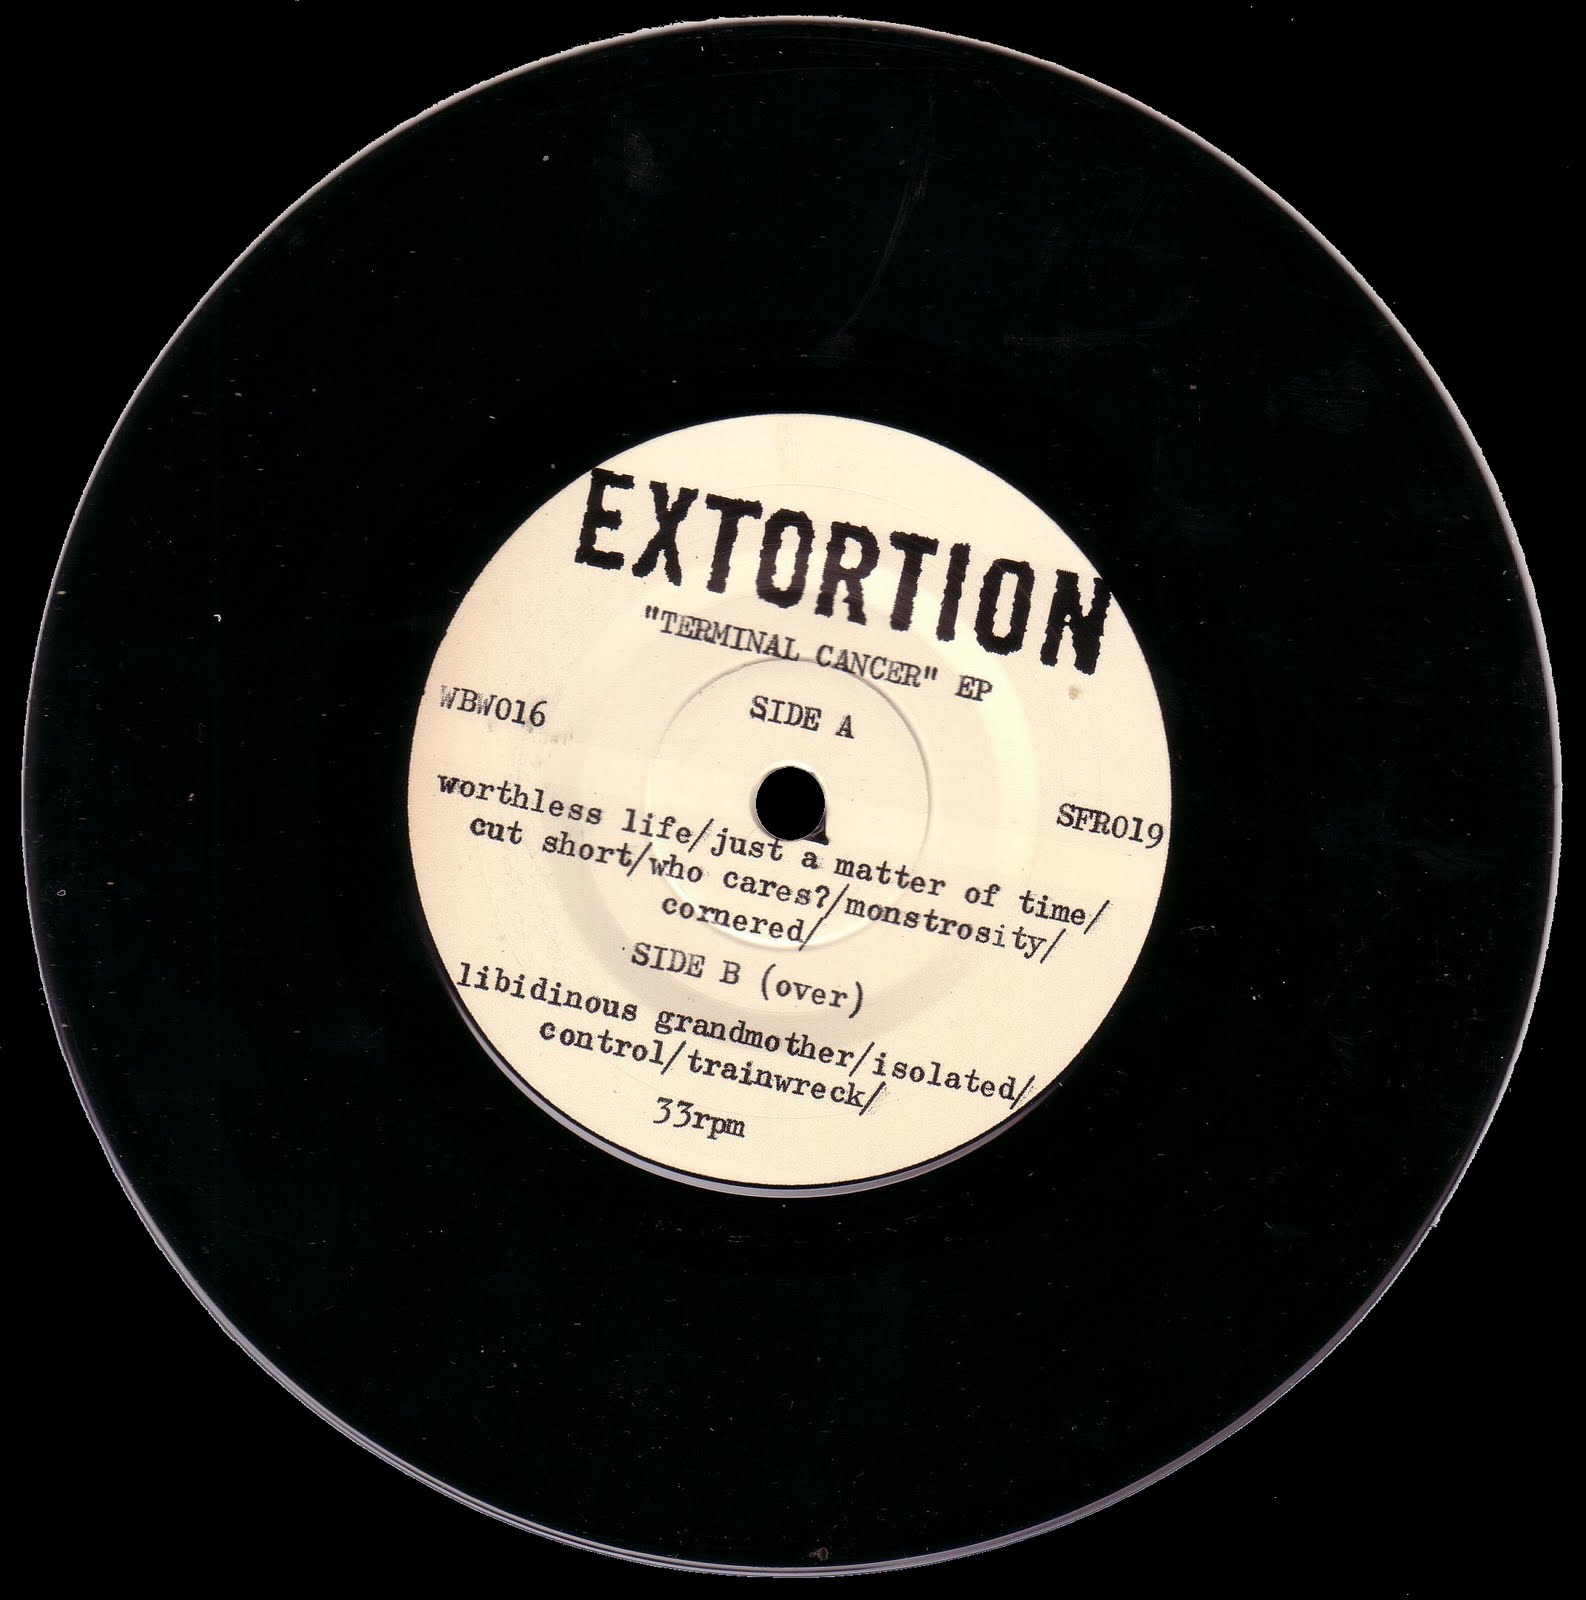 Extortion - Terminal Cancer